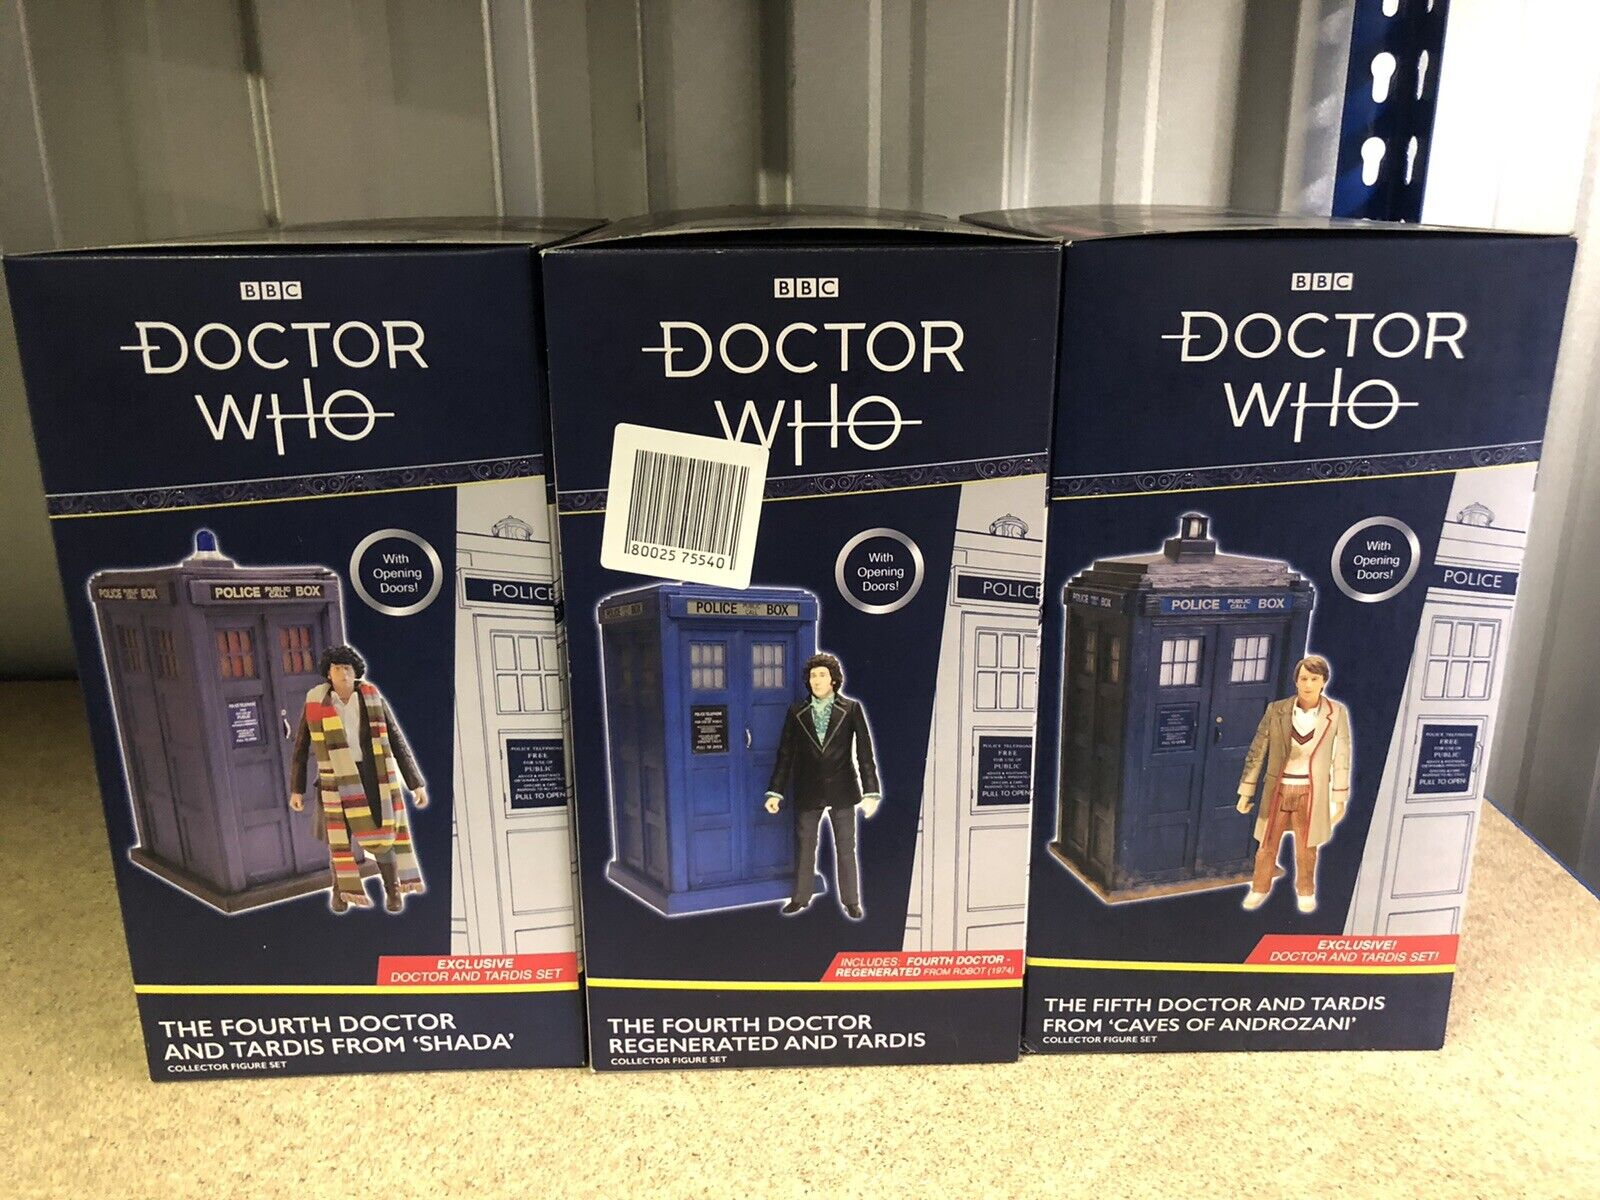 Doctor Who 4th & 5th Dr TARDIS Shada Caves of Androzani Classic Figure Sets X3